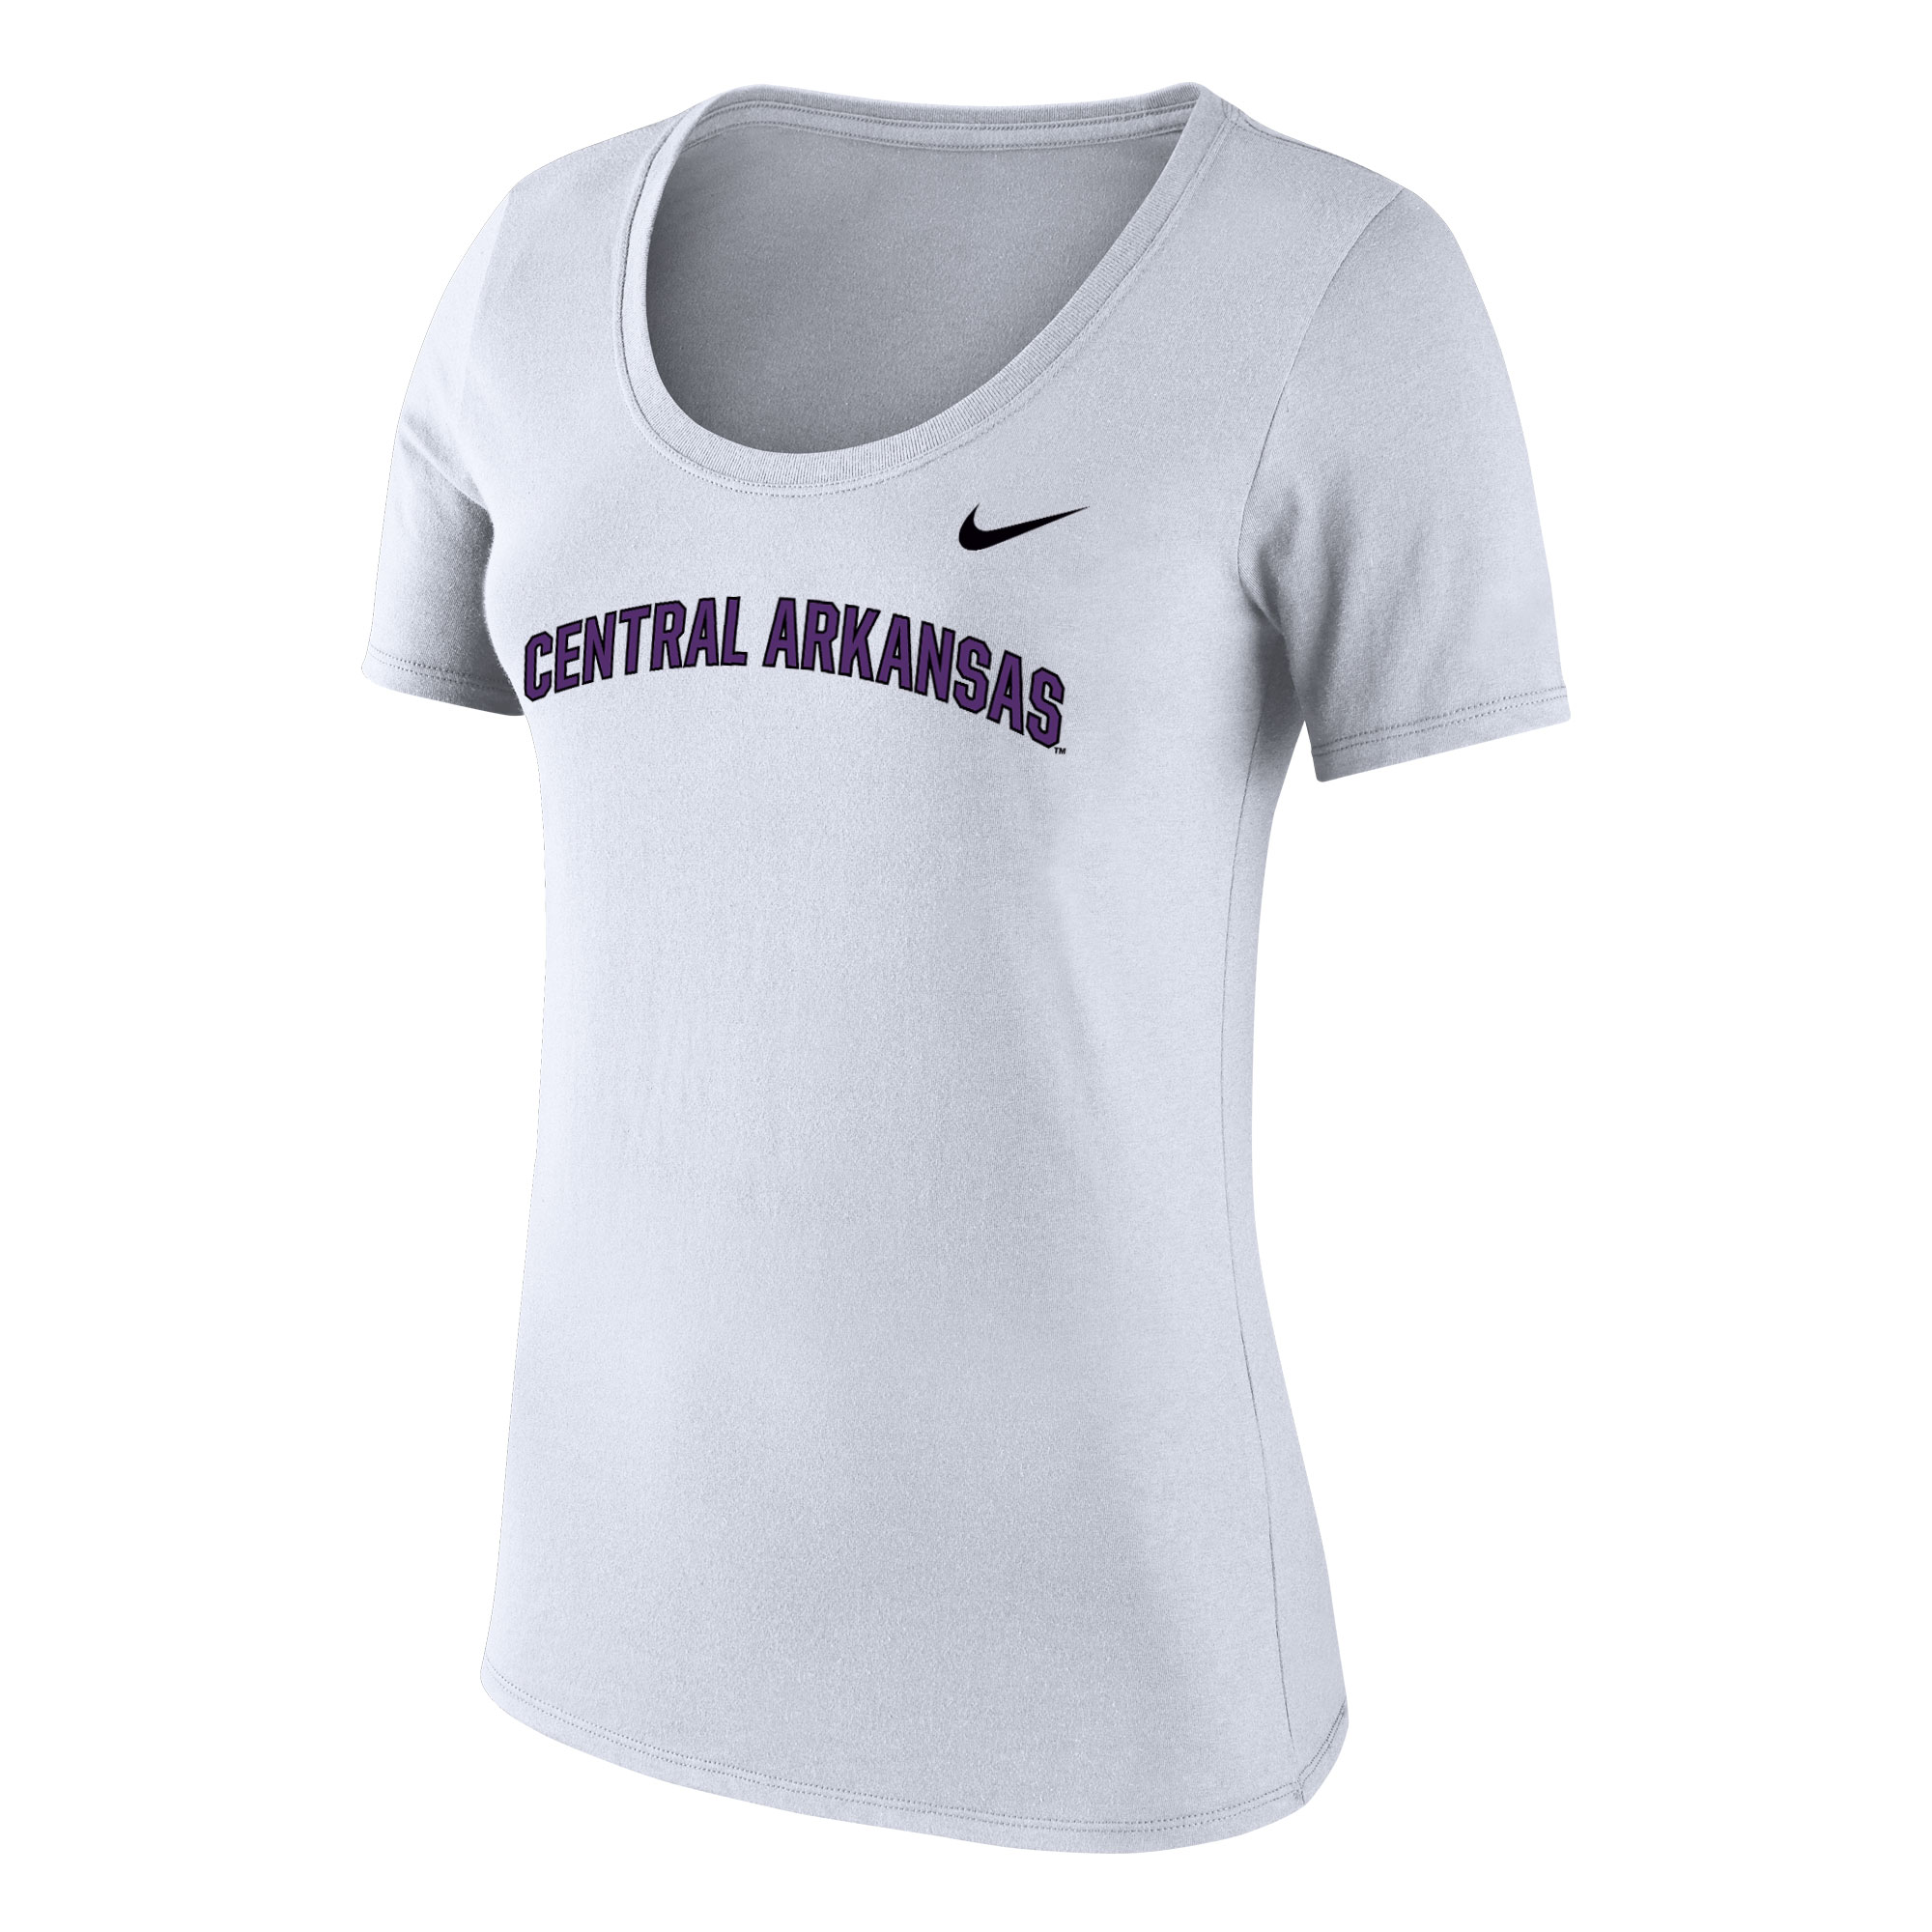 Central Arkansas Scoop Neck SS Tee